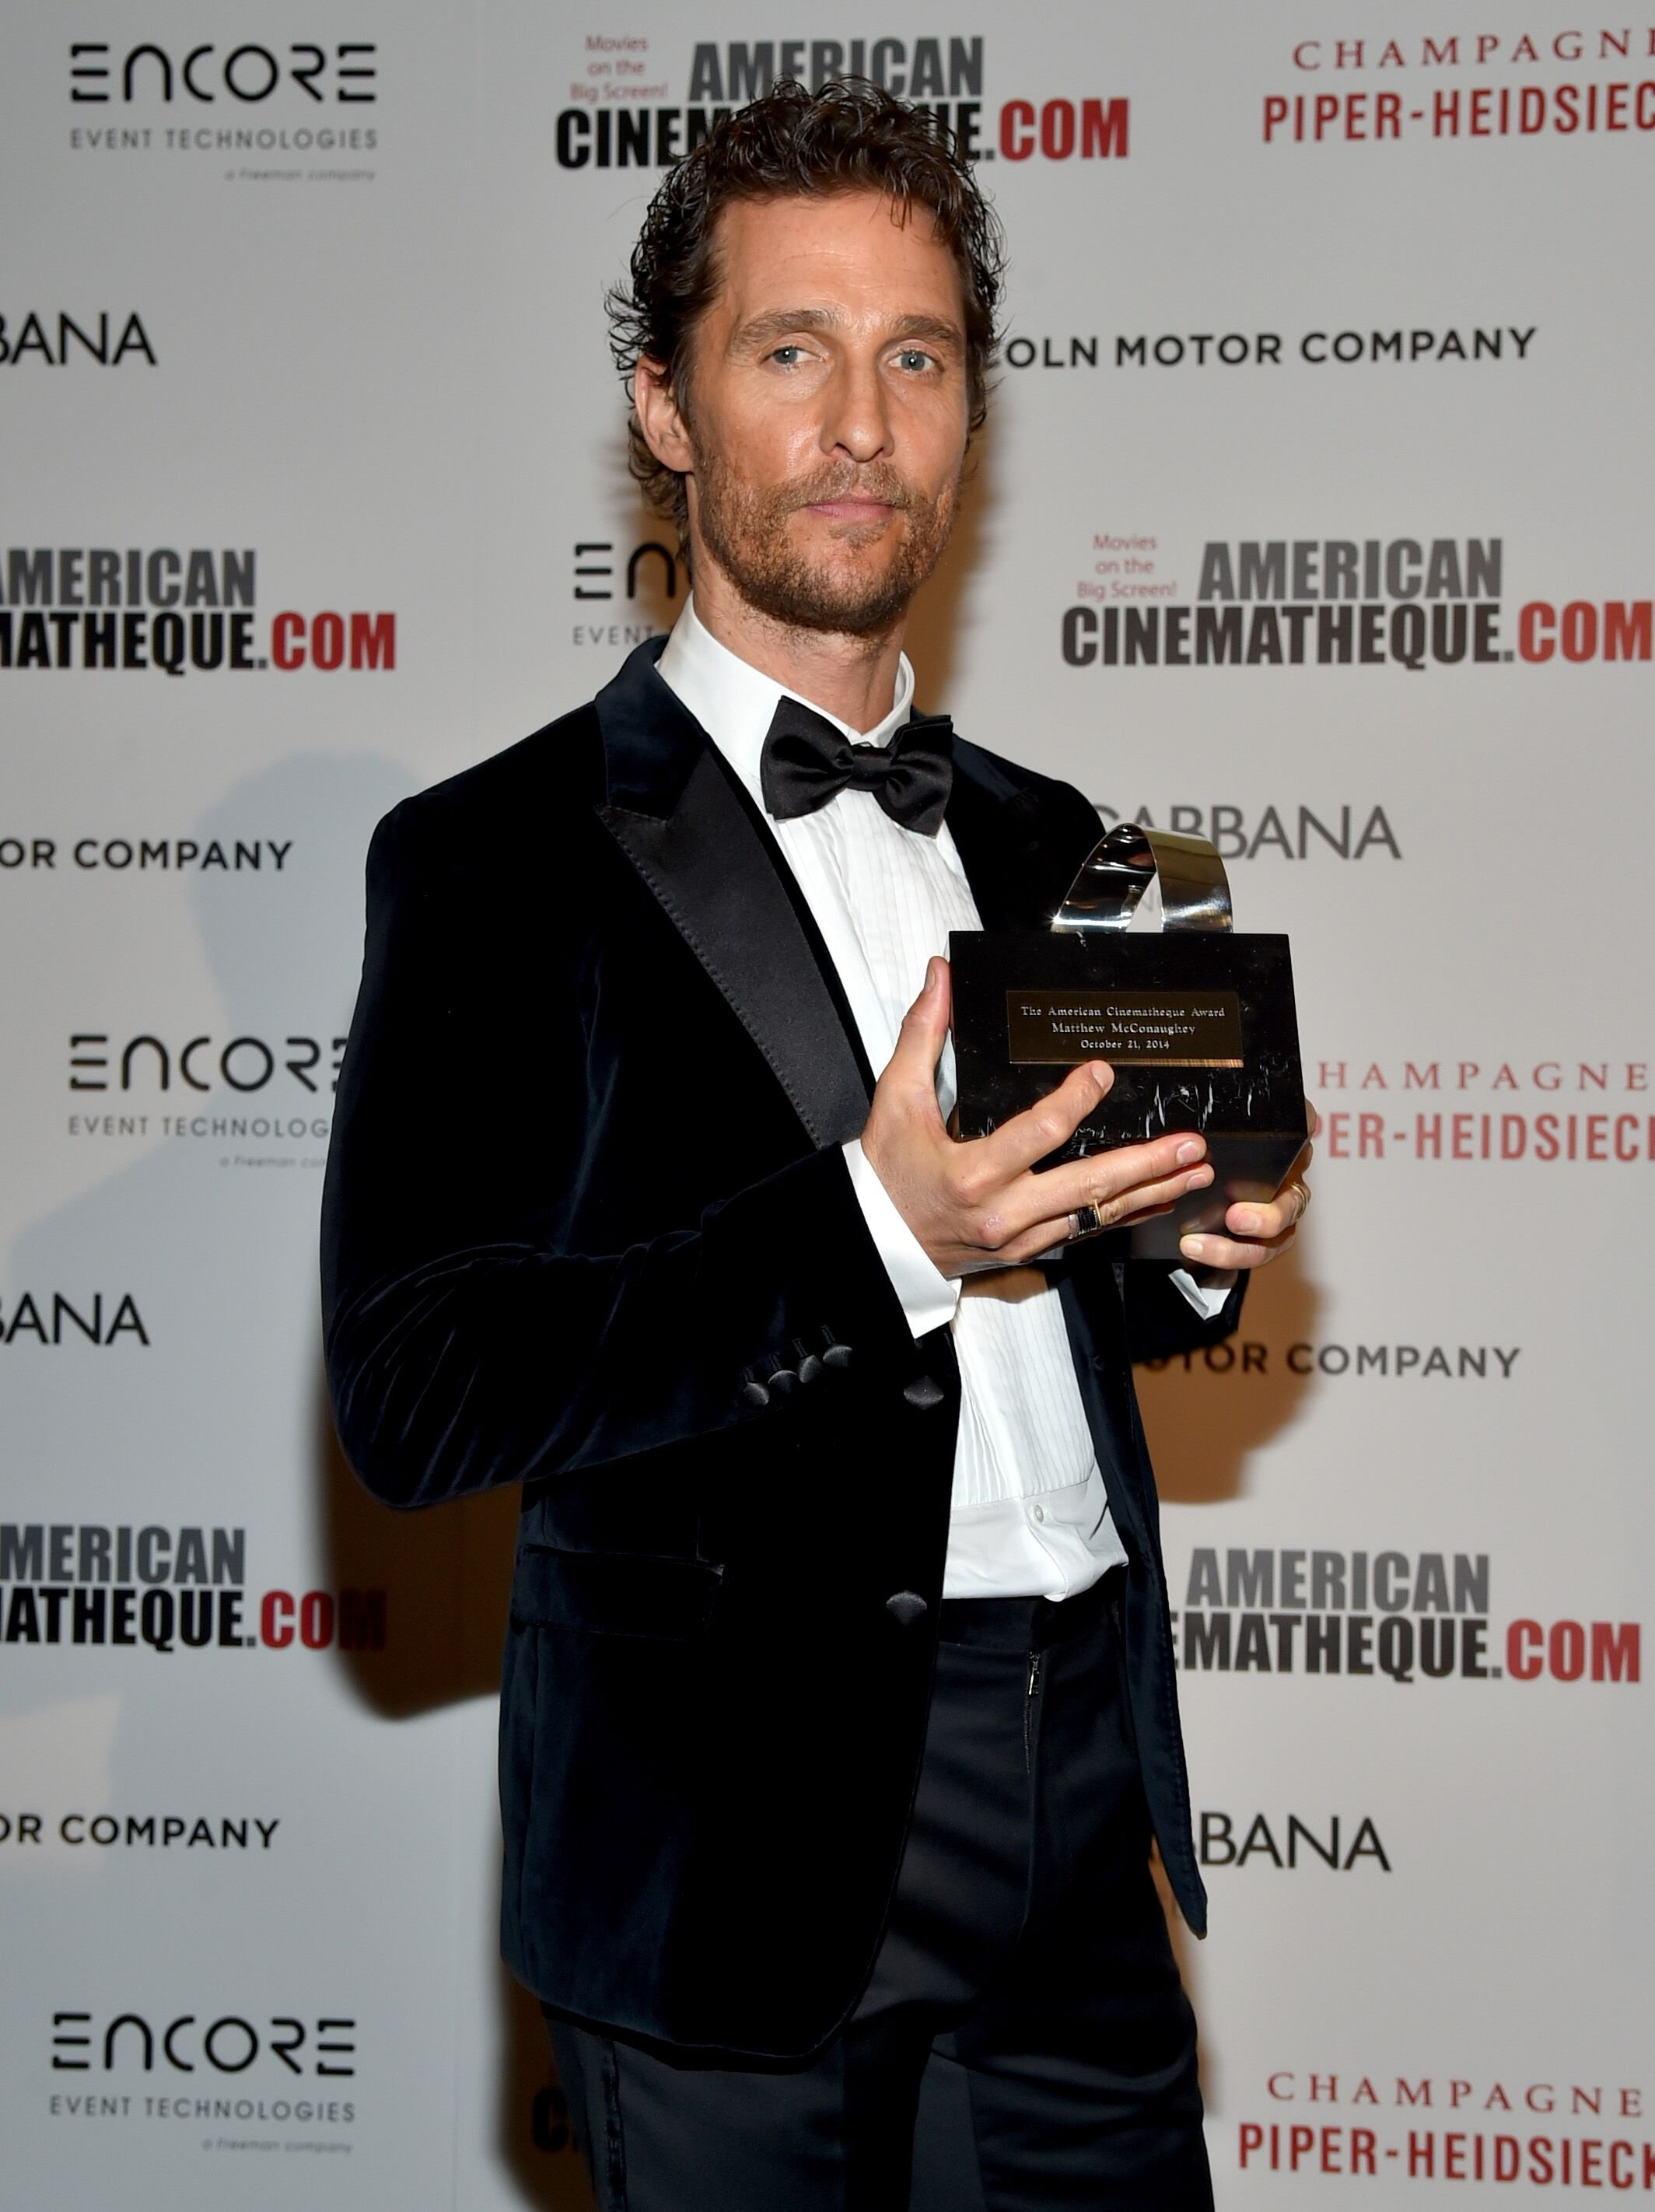 Matthew McConaughey attends the 28th American Cinematheque Award in 2014 | Source: Getty Images